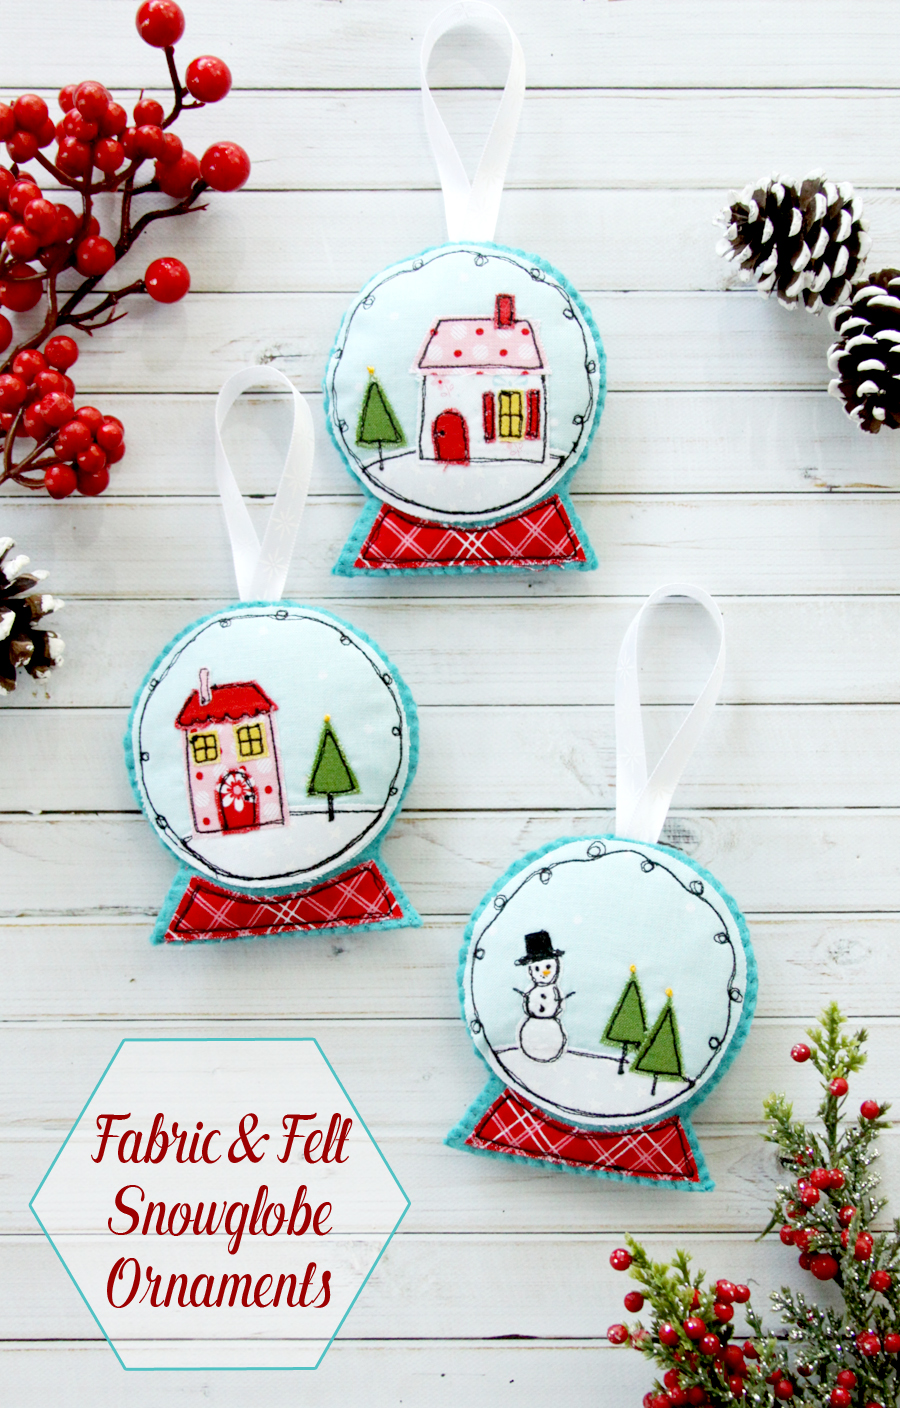 Fabric and Felt Snowglobe Ornaments | Fabulous and Fun DIY Christmas Ornaments by popular Tennessee craft blog, Flamingo Toes: image of stitched snow globe ornament.